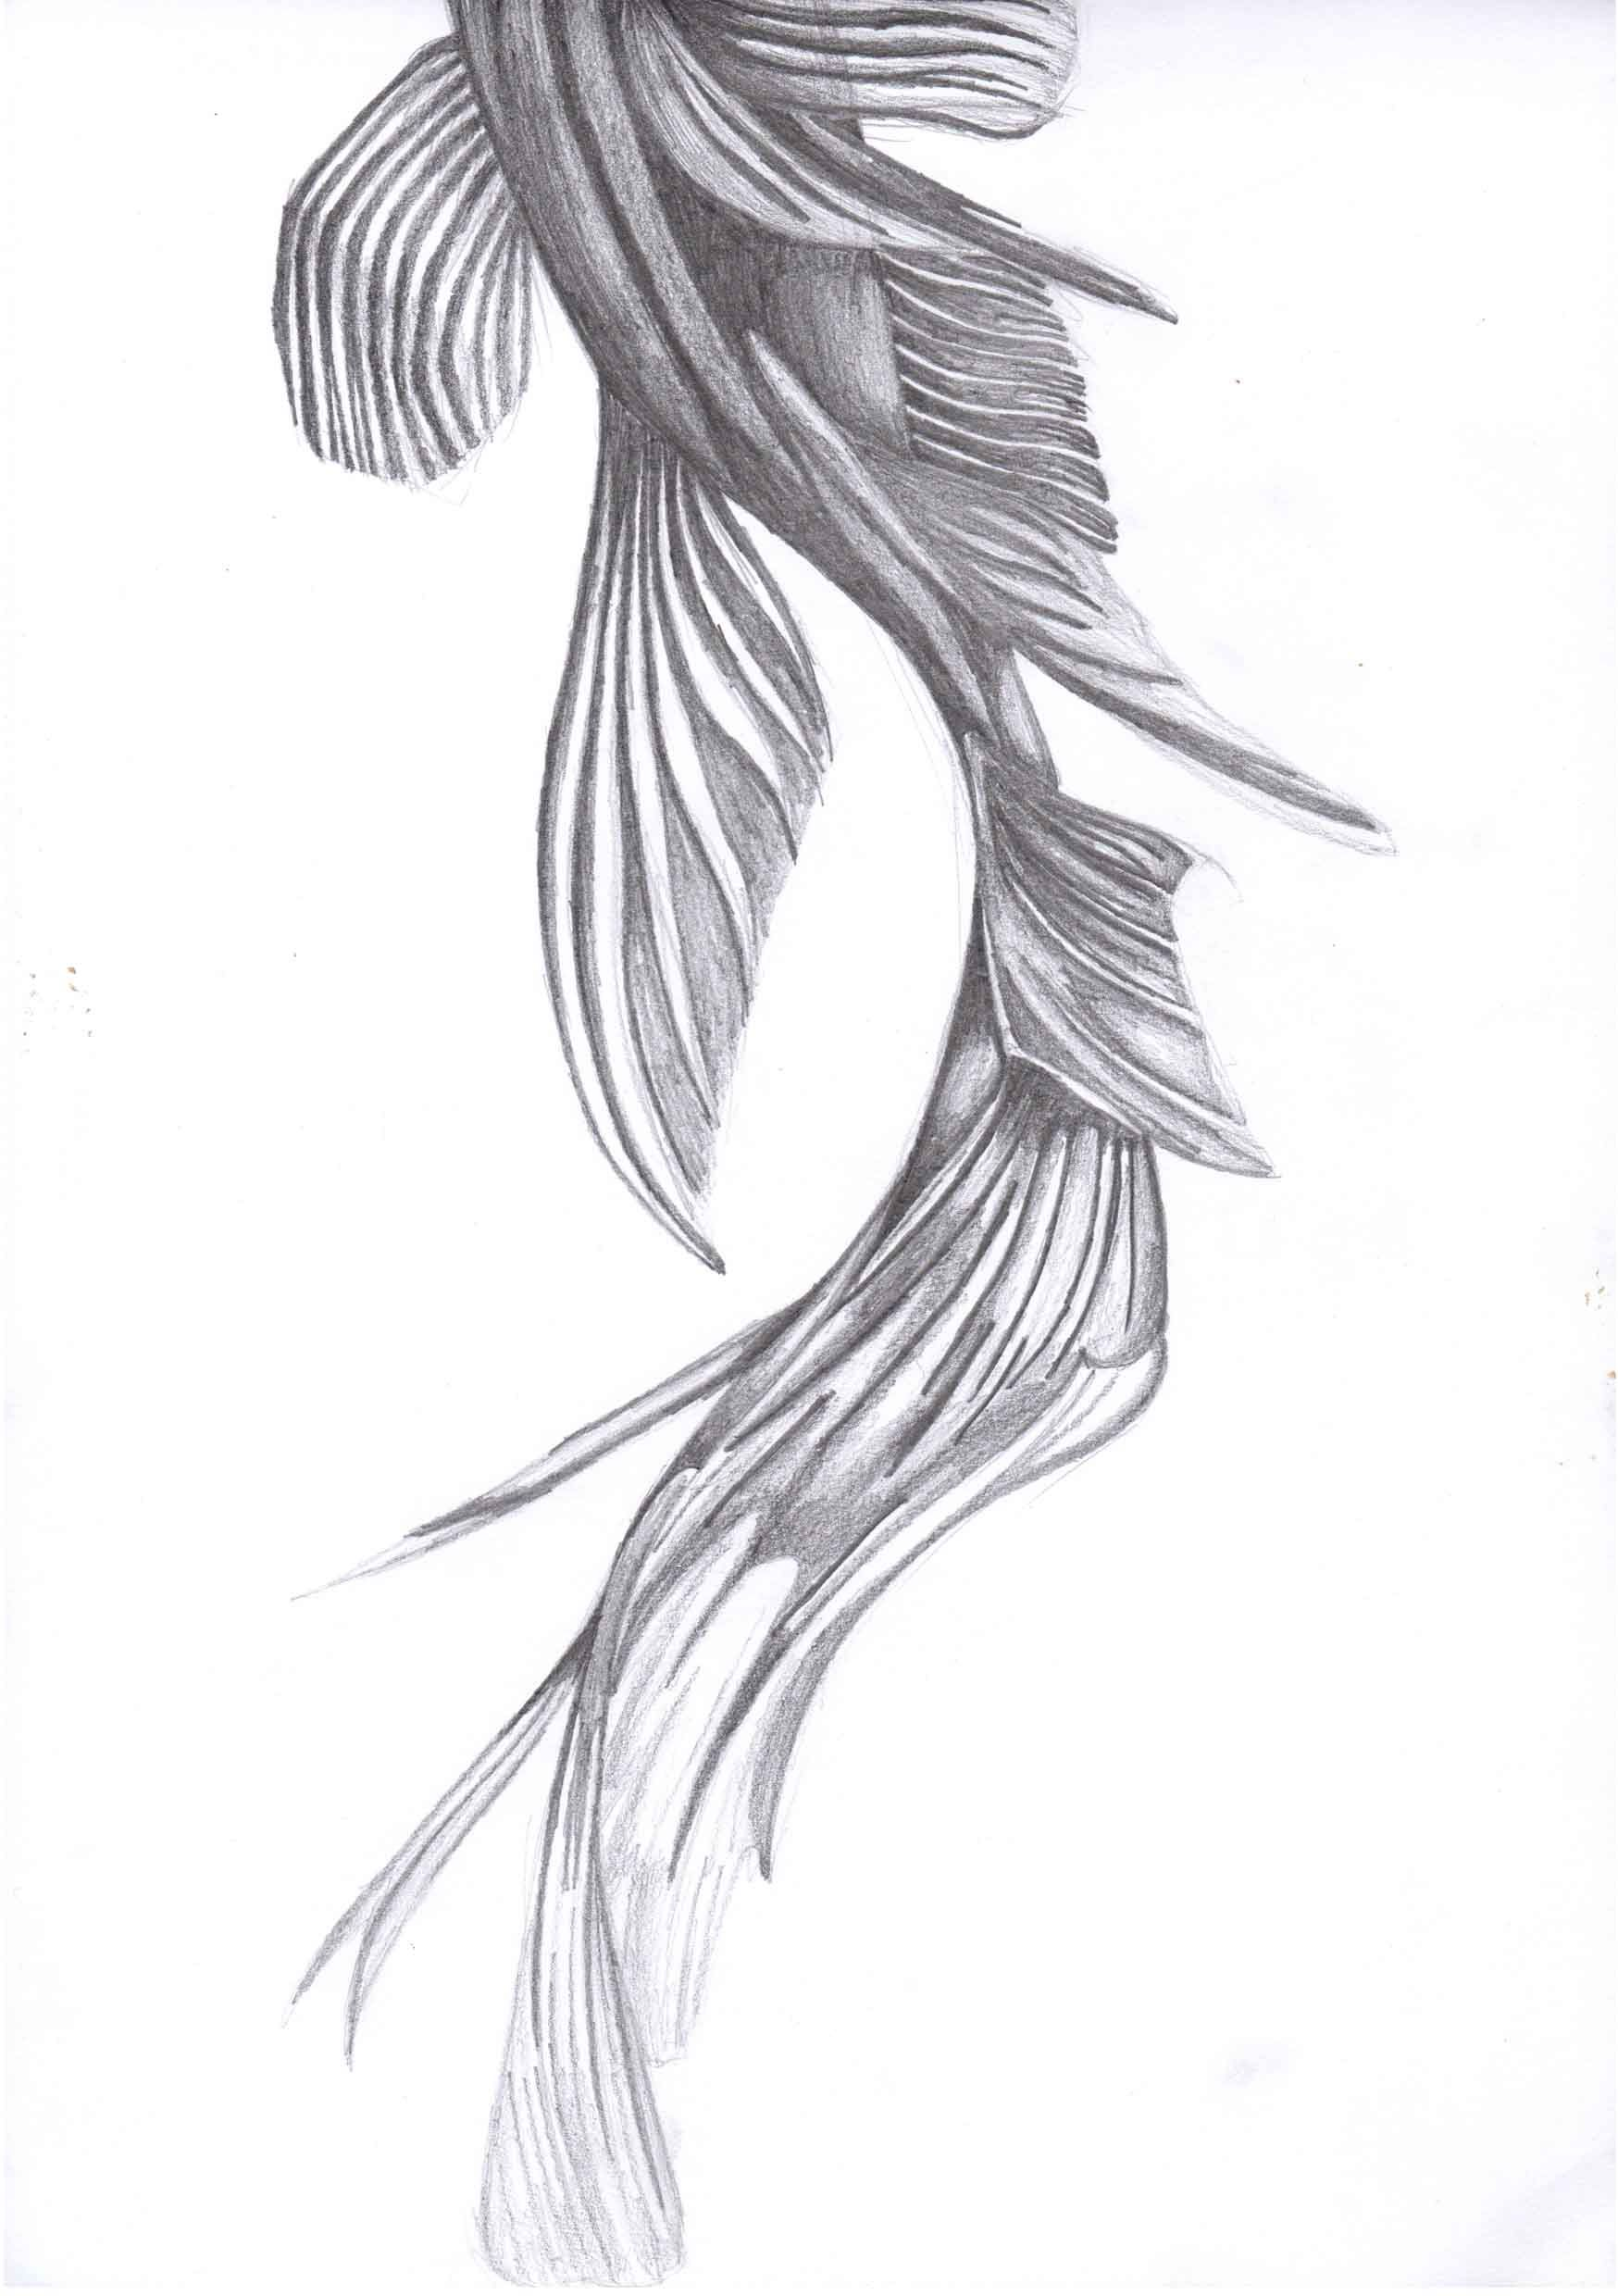 This is a graphic of Bewitching Fish Drawing Images